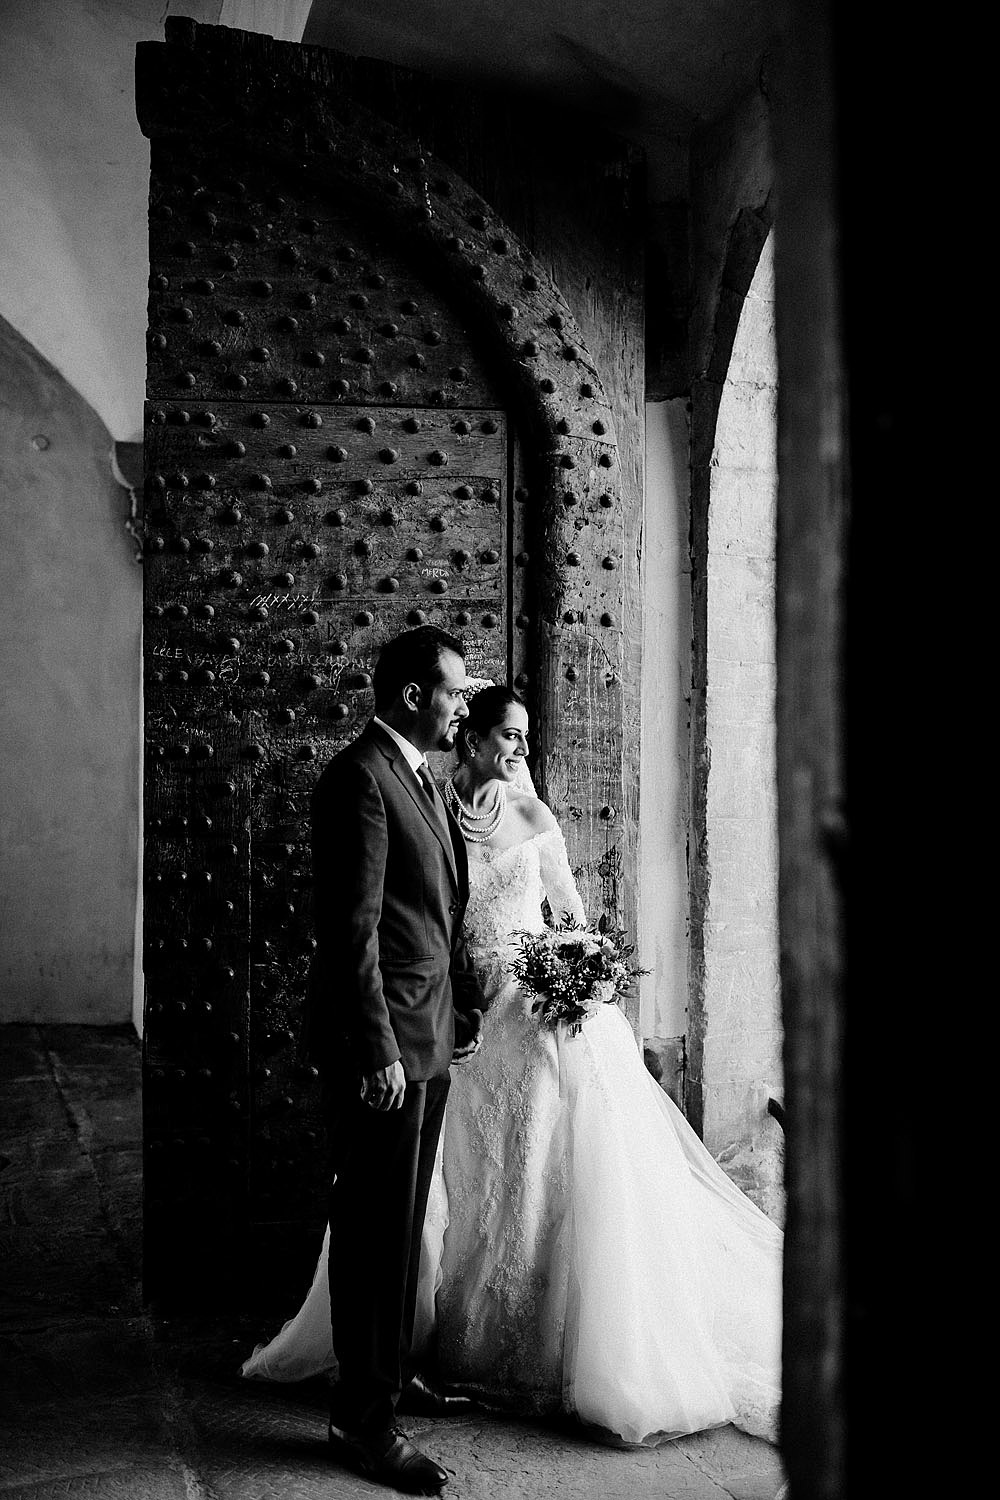 LUNA DI MIELE A FIRENZE TOSCANA :: Luxury wedding photography - 20